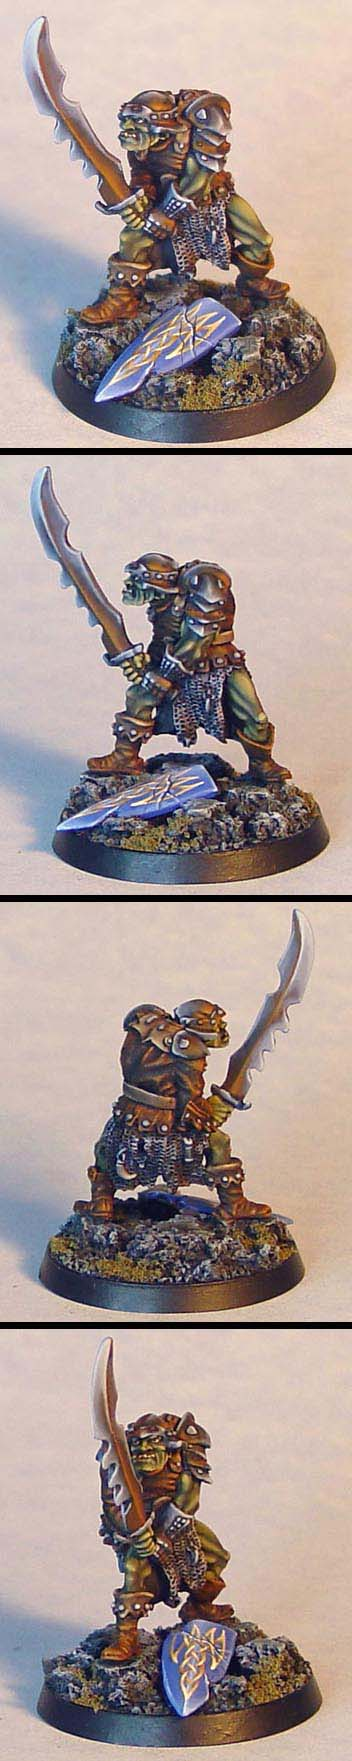 Ral Partha orc on sculpted base by James